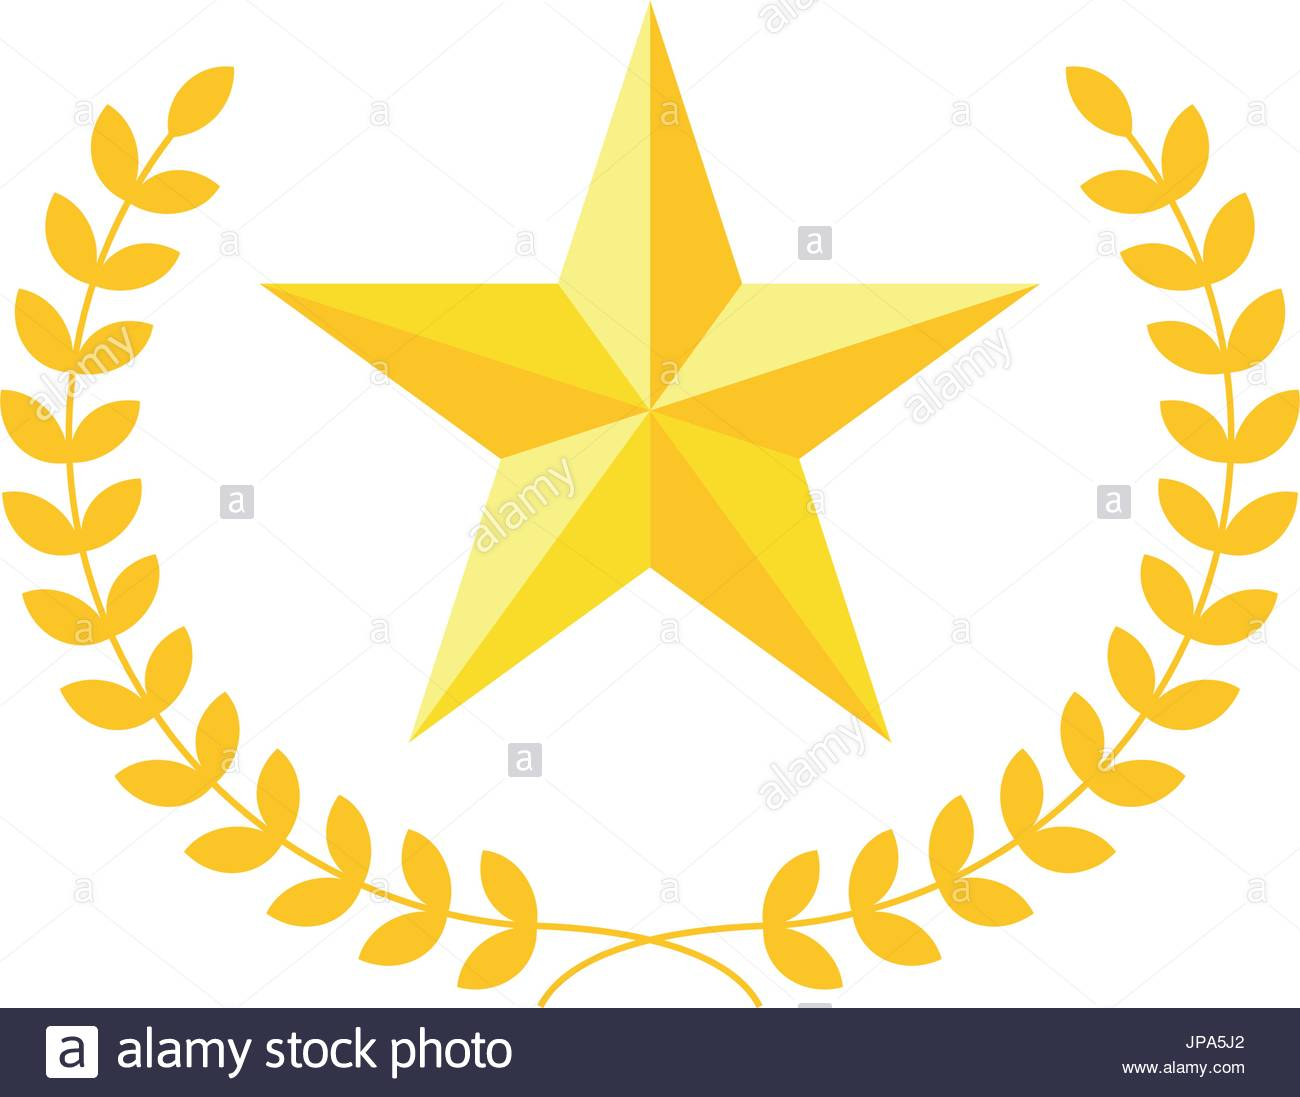 1300x1097 Five Pointed Star Vector Icon With Laurel Wreath. Modern Flat